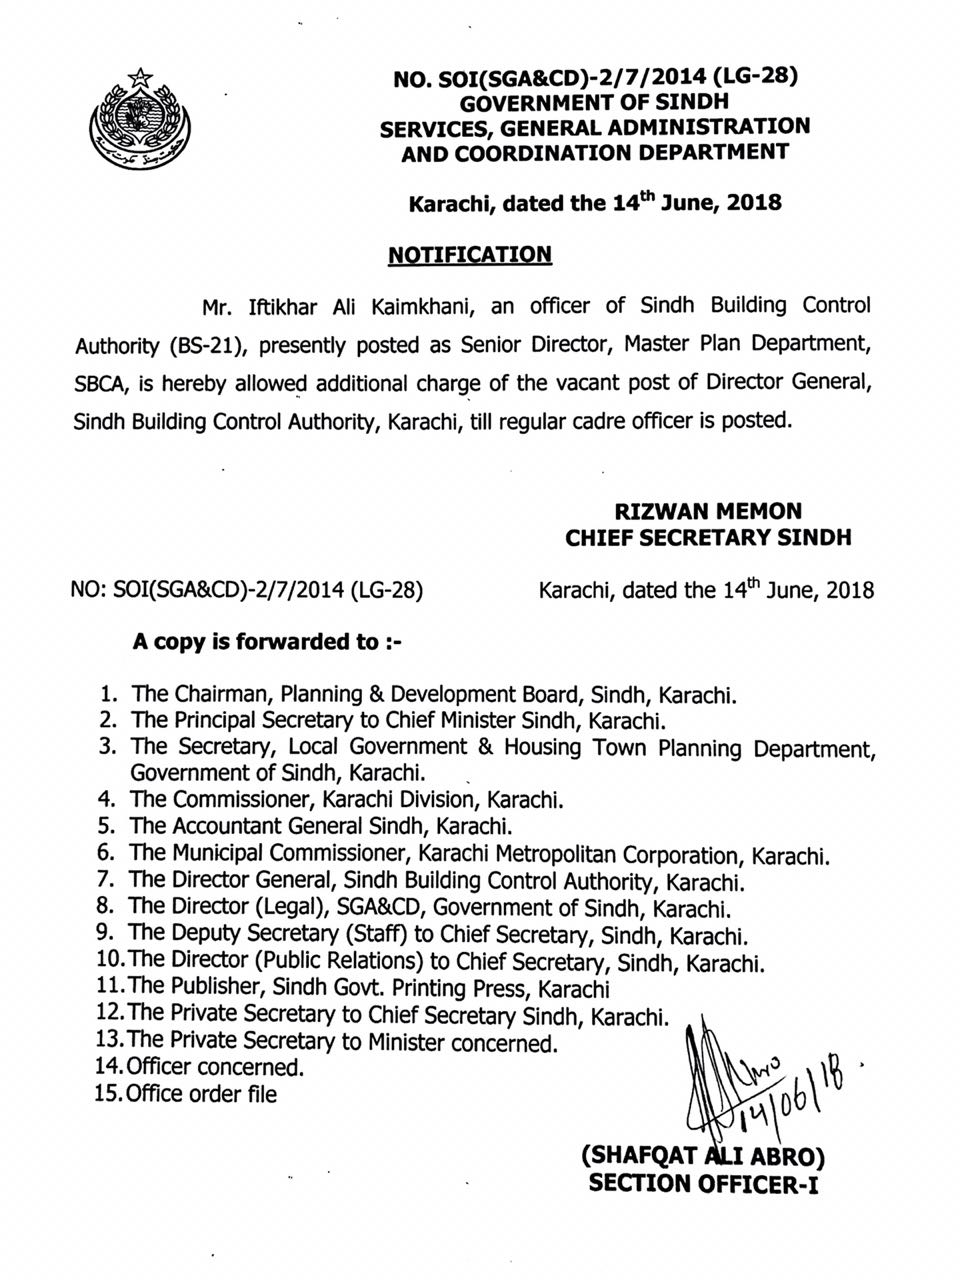 Ifthekhar Qaim Khani Posted as a New DG of SBCA, order issued on 14-06-2018